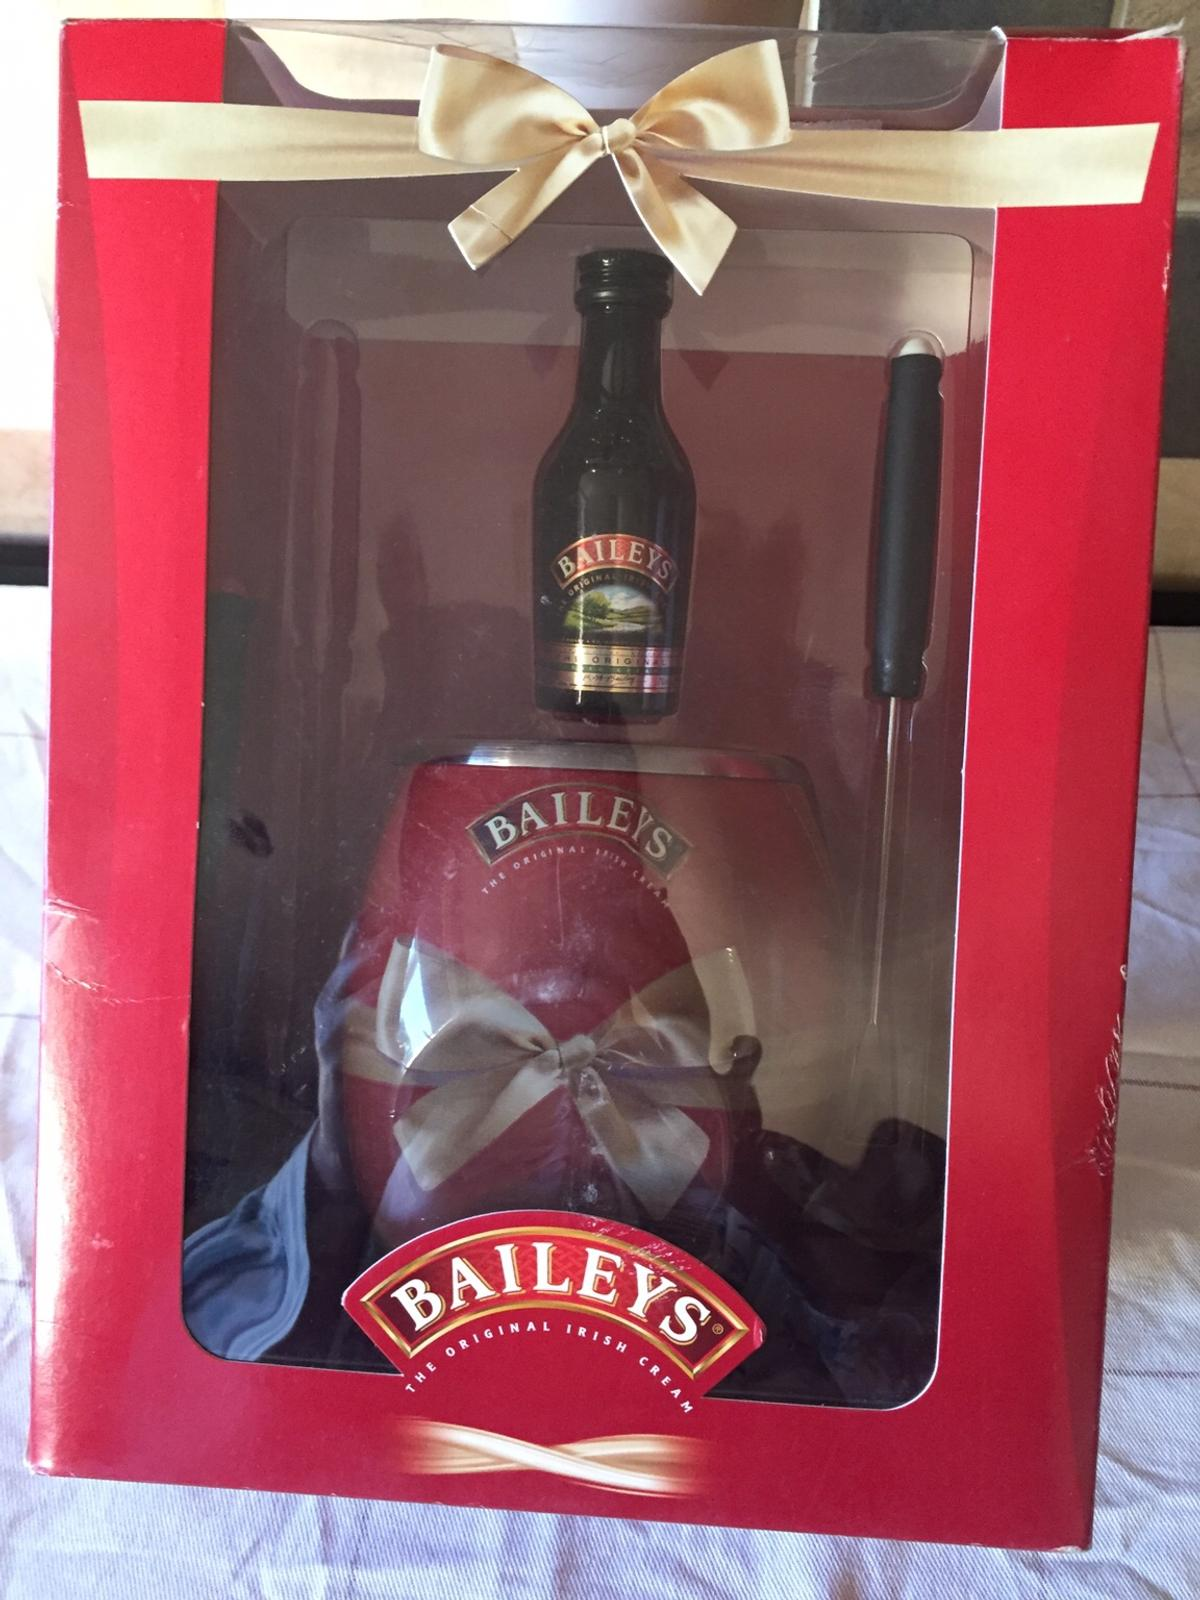 Unused and unwanted gift. For all you Baileys fans.